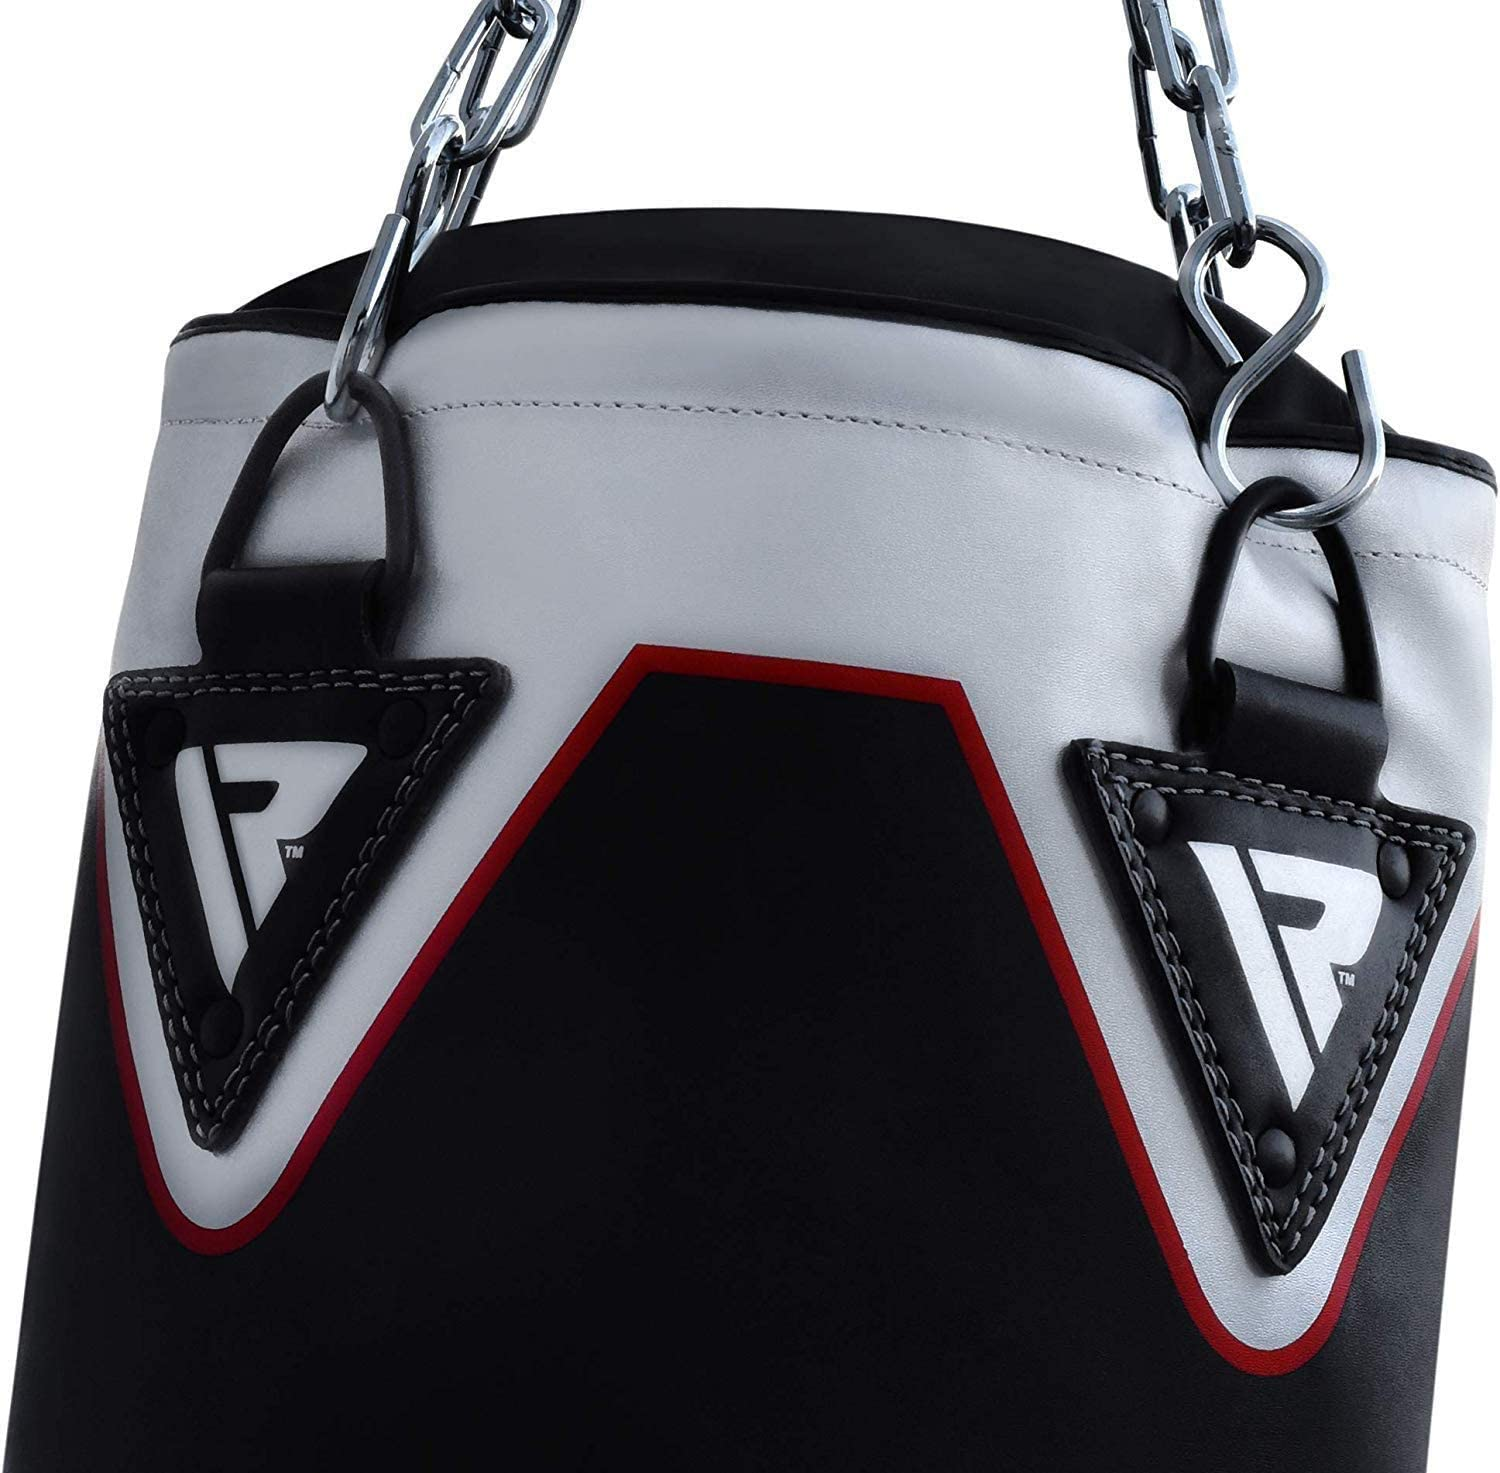 Kickboxing MMA Chain 4 pcs Comes In 4FT//5FT Filled Heavy Bag Set with Punching Gloves Muay Thai BJJ /& Taekwondo Karate RDX Punch Bag for Boxing Training Great for Grappling Wall Bracket